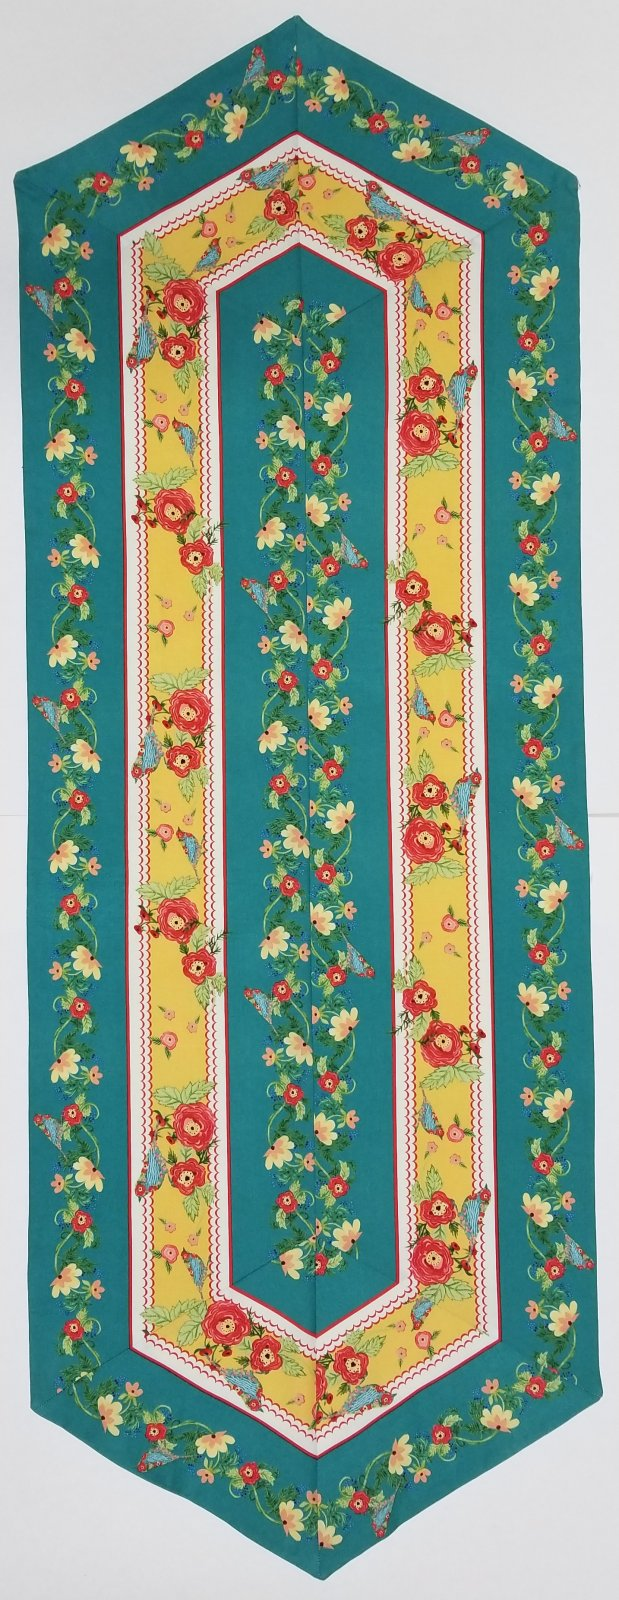 Easy Striped Teal Flower Table Runner KIt